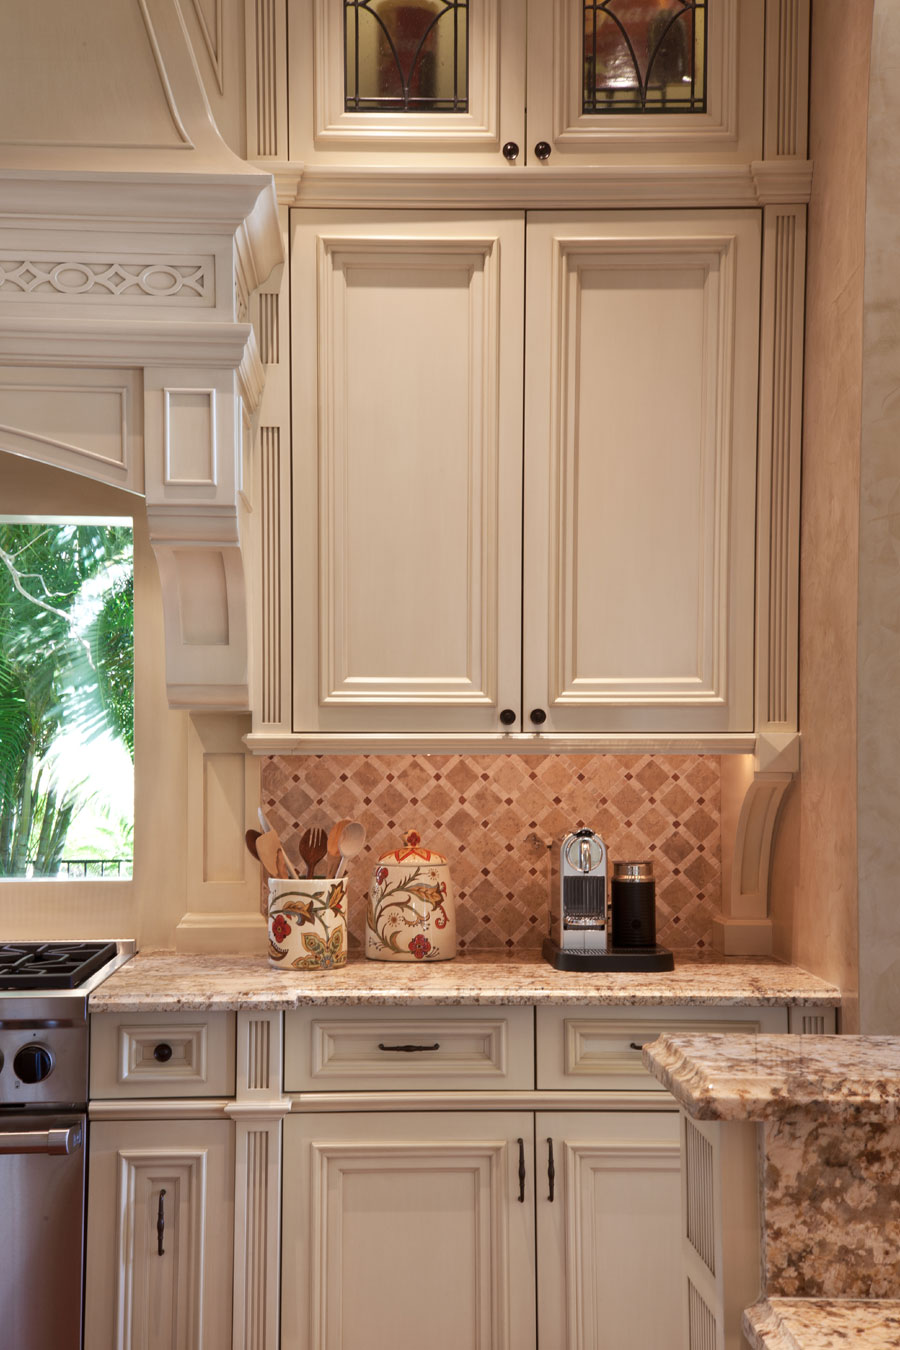 how to faux finish kitchen cabinets faux finish gallery o guin decorative finishes 8642